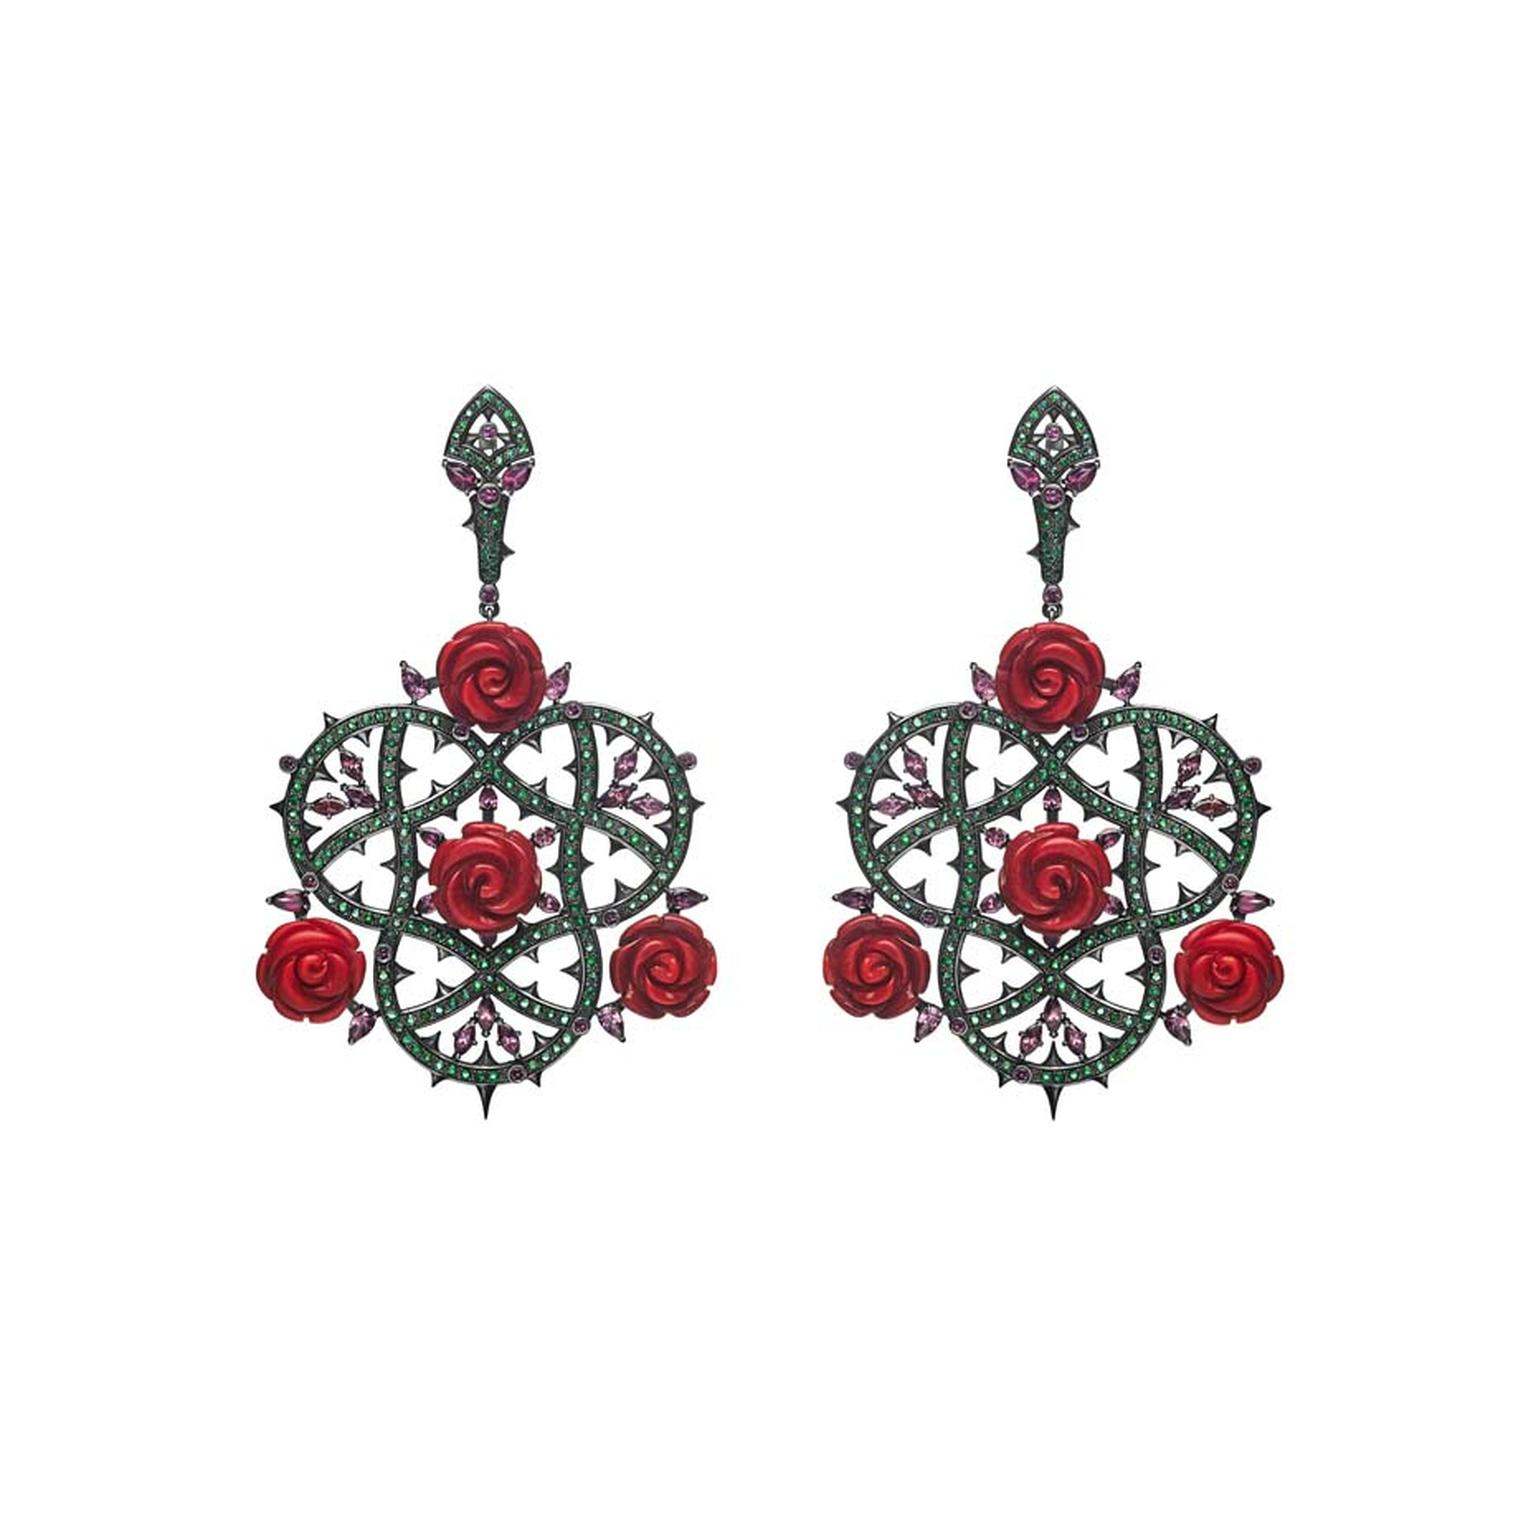 Petr Axenoff silver Rose Bush earrings with emeralds, coral and rhodolites